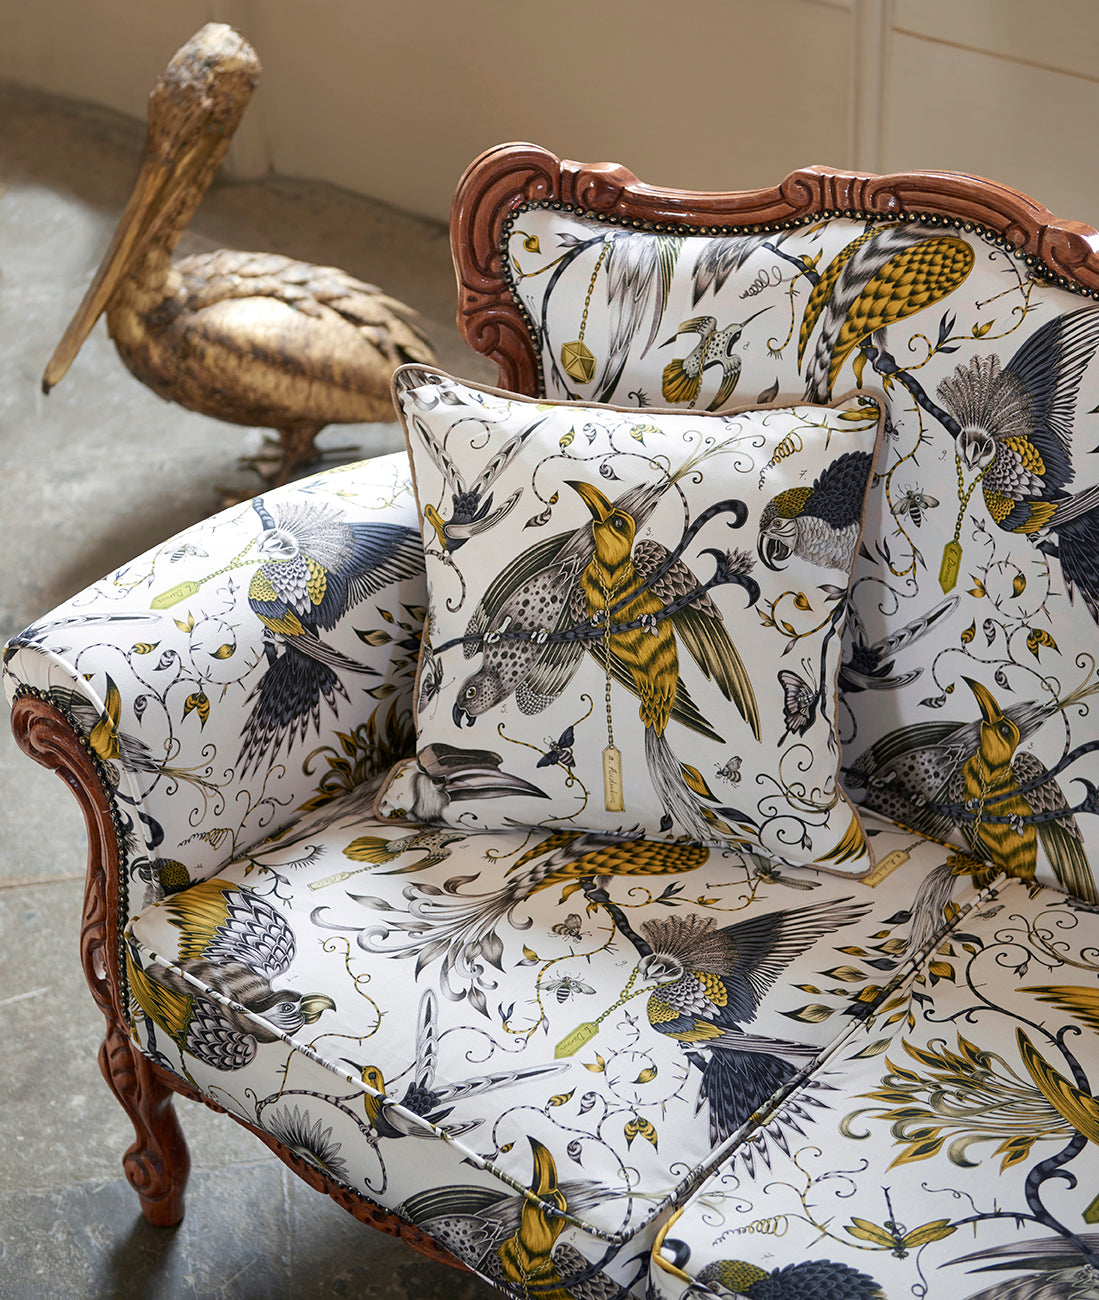 Animalia fabric on chair and cushion